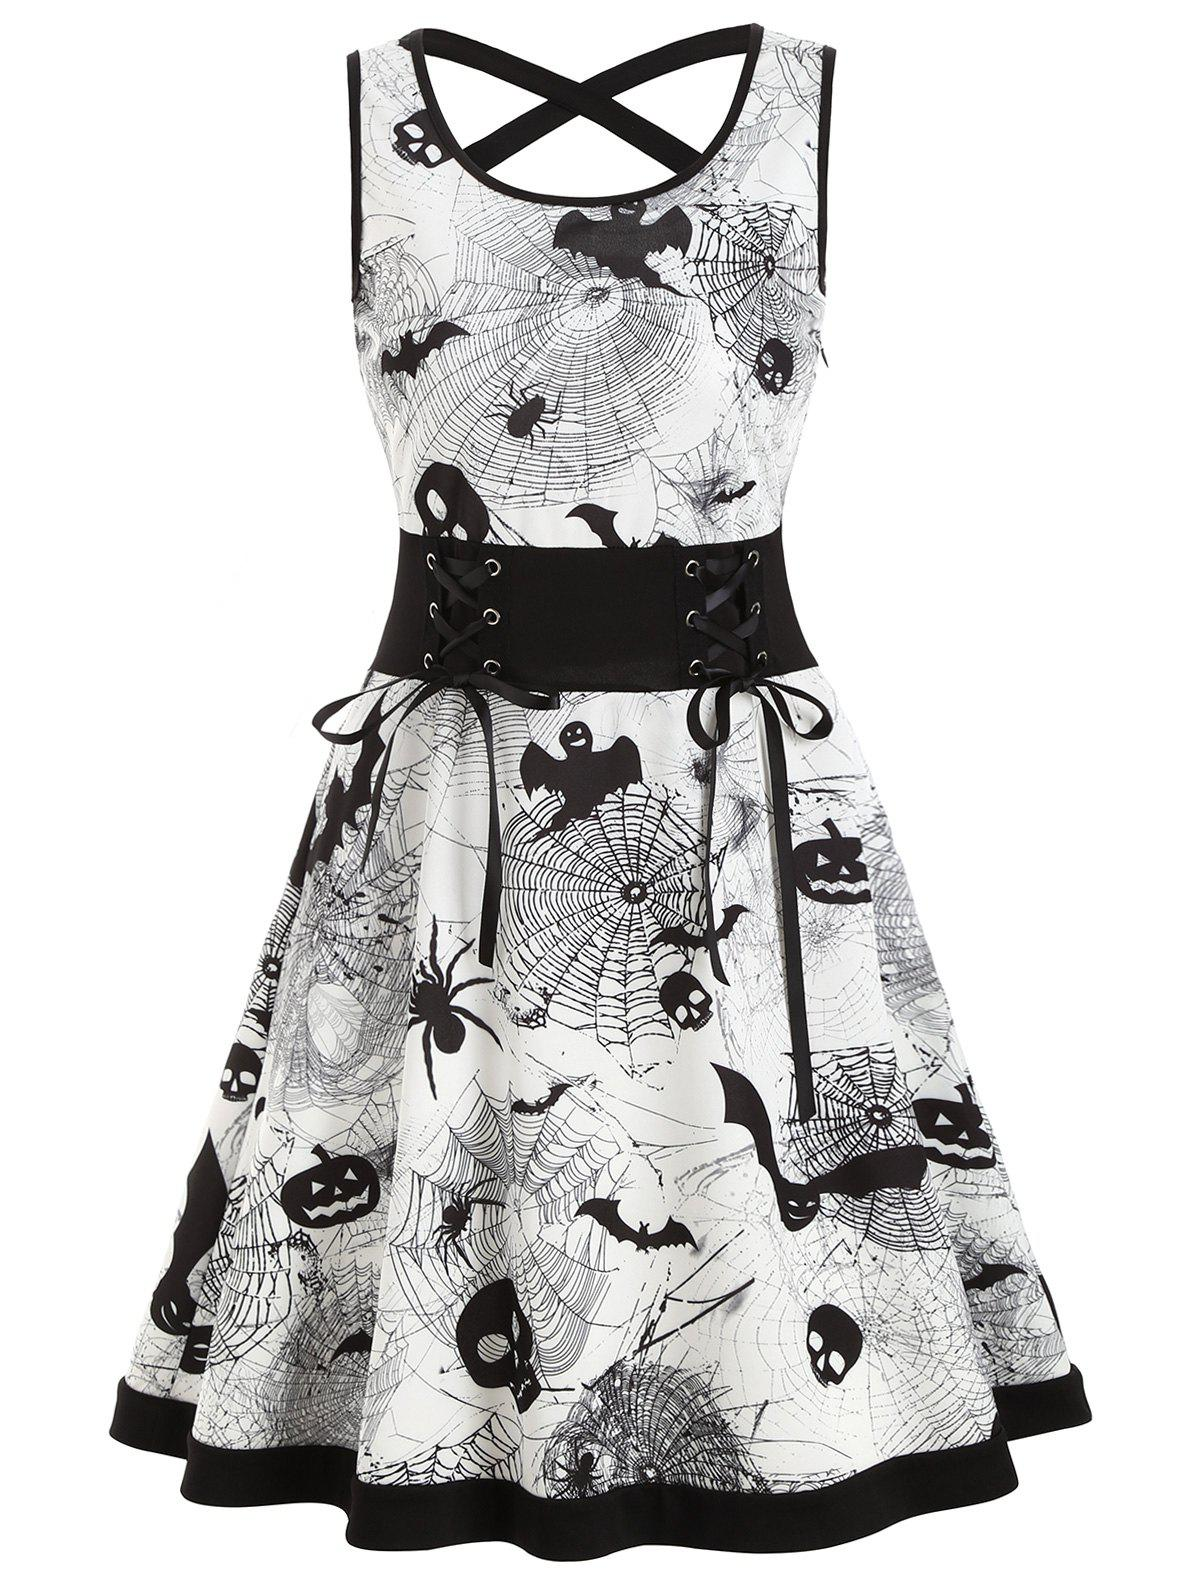 Shops Criss Cross Bat Pumpkin Halloween Flare Dress